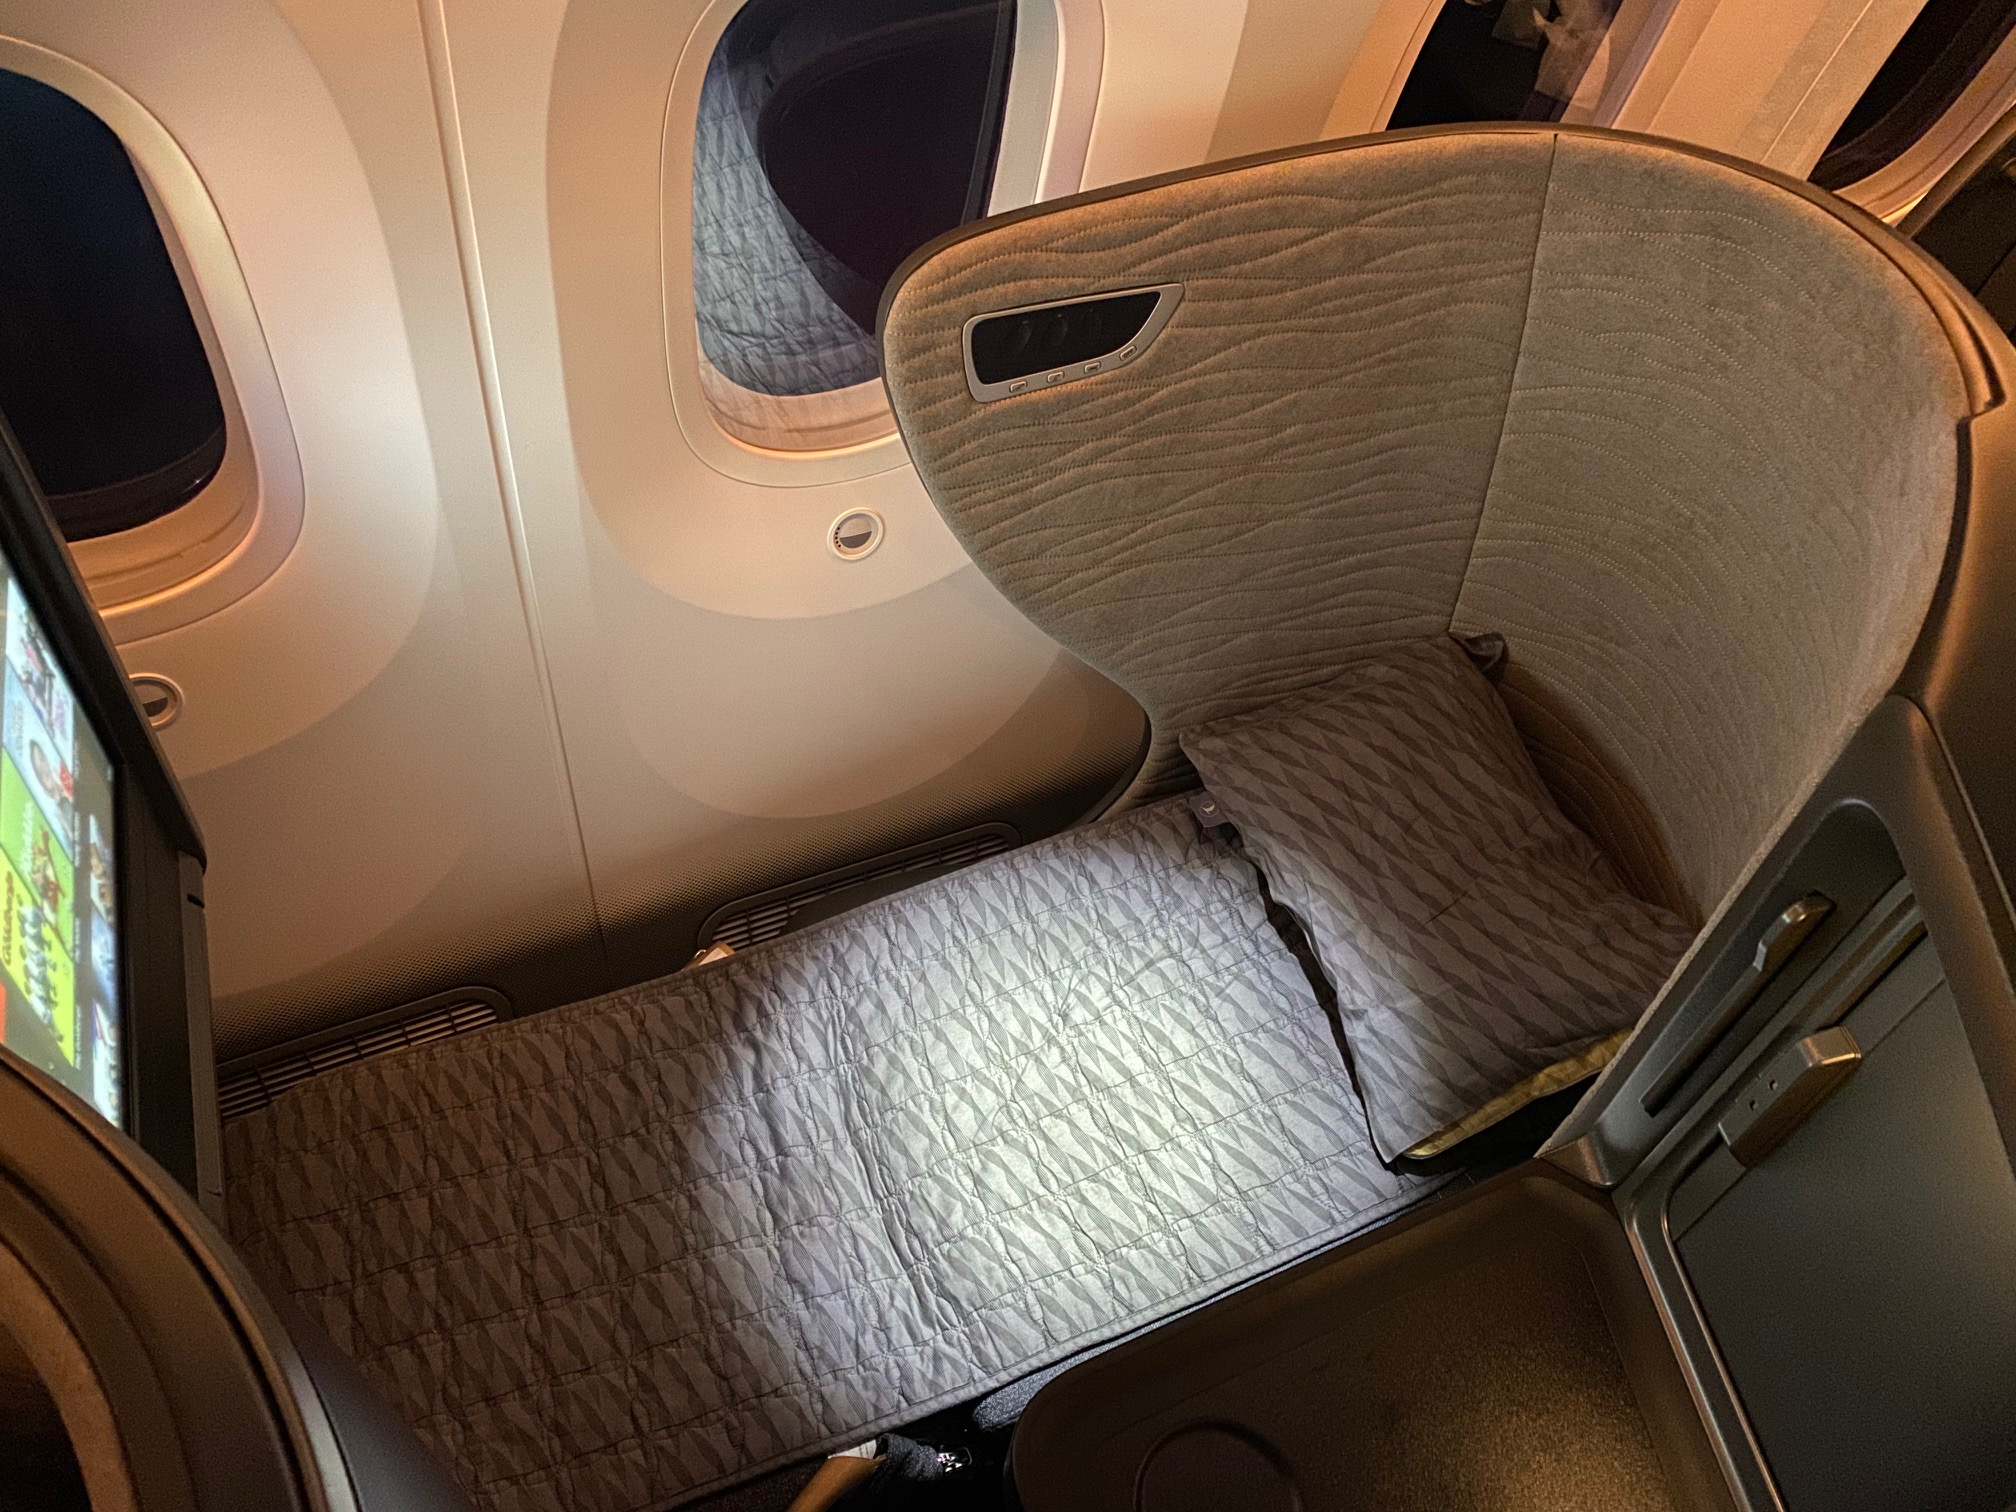 Turkish Airlines 787-9 Business Class Bed